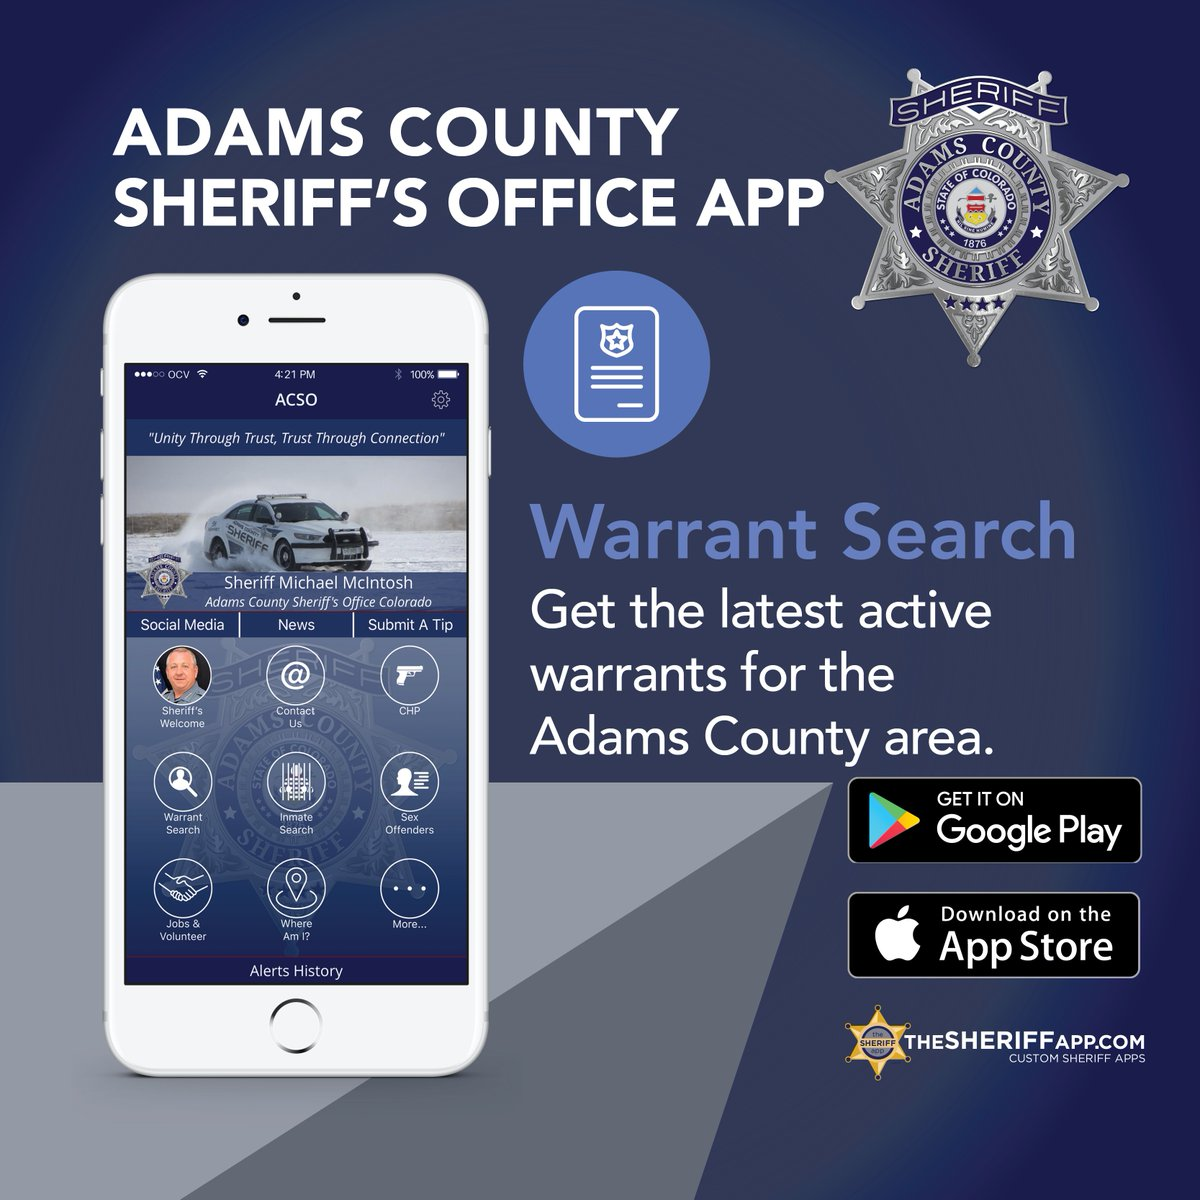 Adams Sheriff's Page on Twitter: